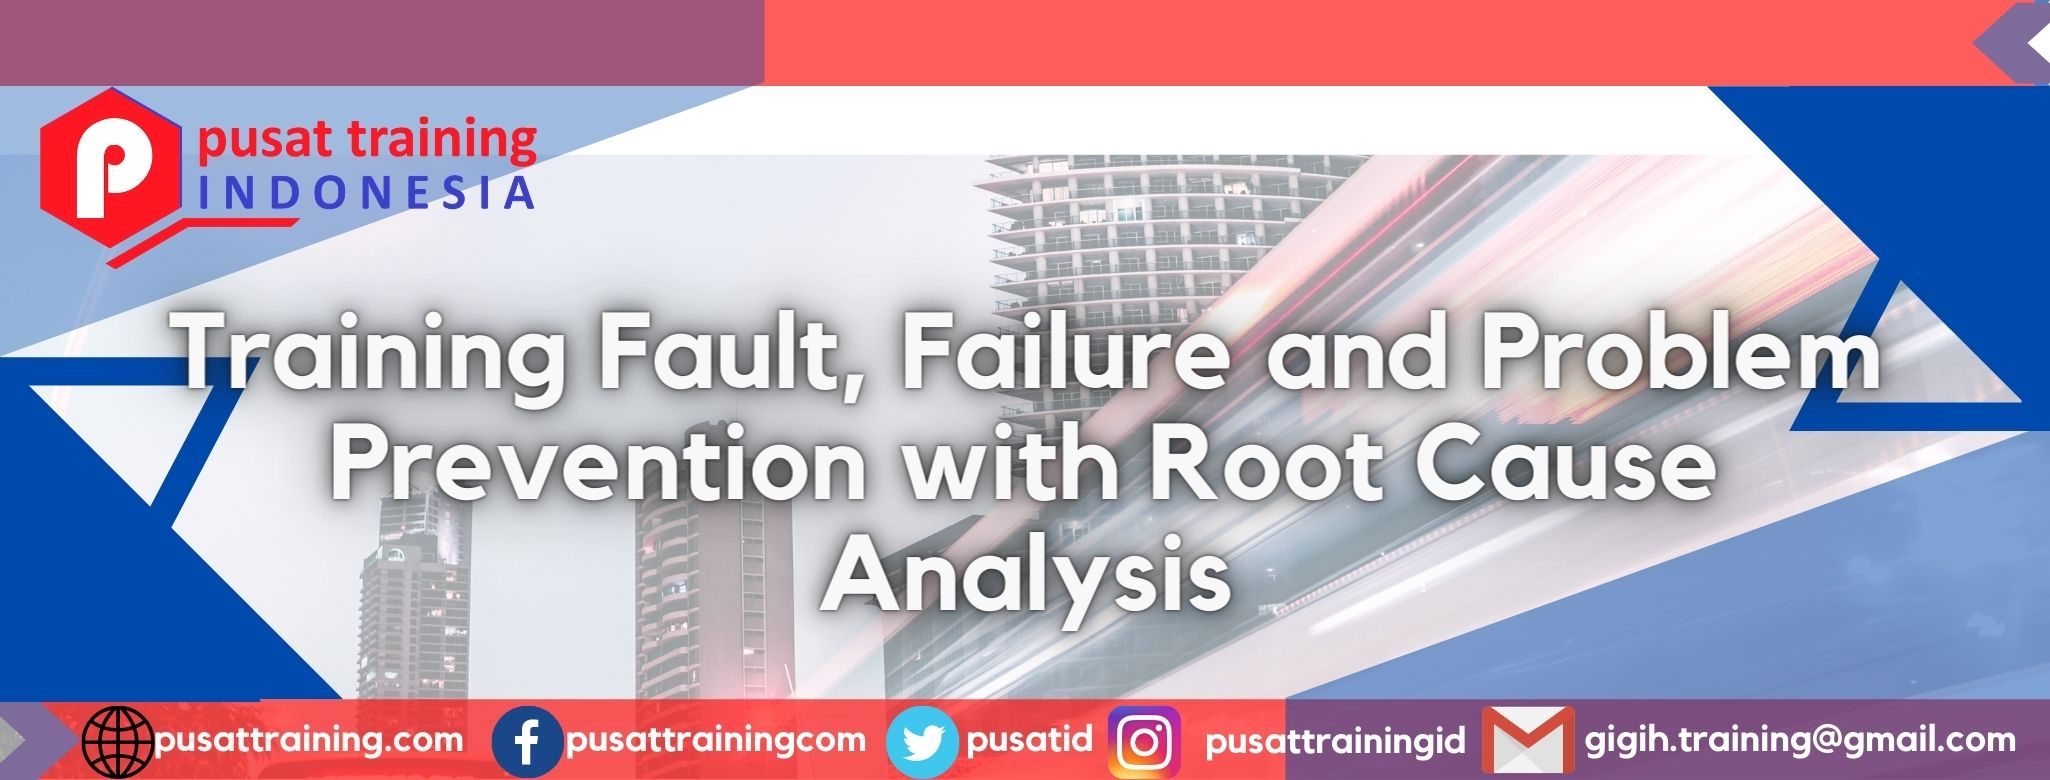 Training-Fault-Failure-and-Problem-Prevention-with-Root-Cause-Analysis